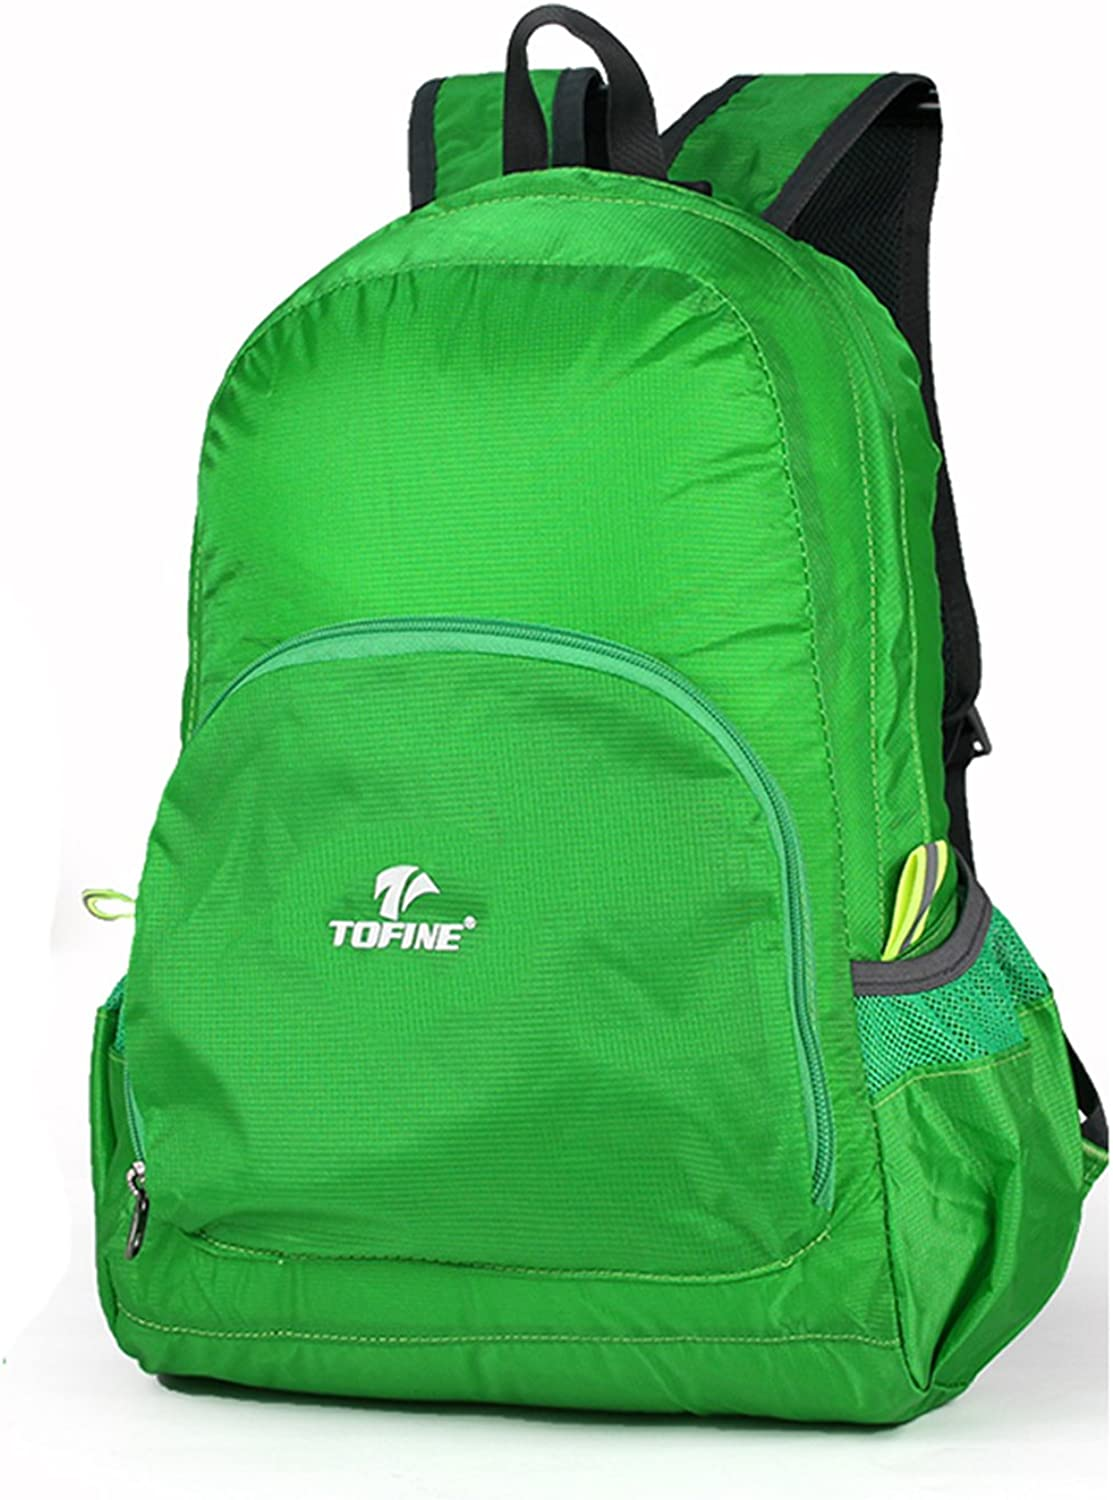 TOFINE Traveling Bag Lightweight Backpack Daypack for Hiking Camping Water Resistant Green 25 Liter